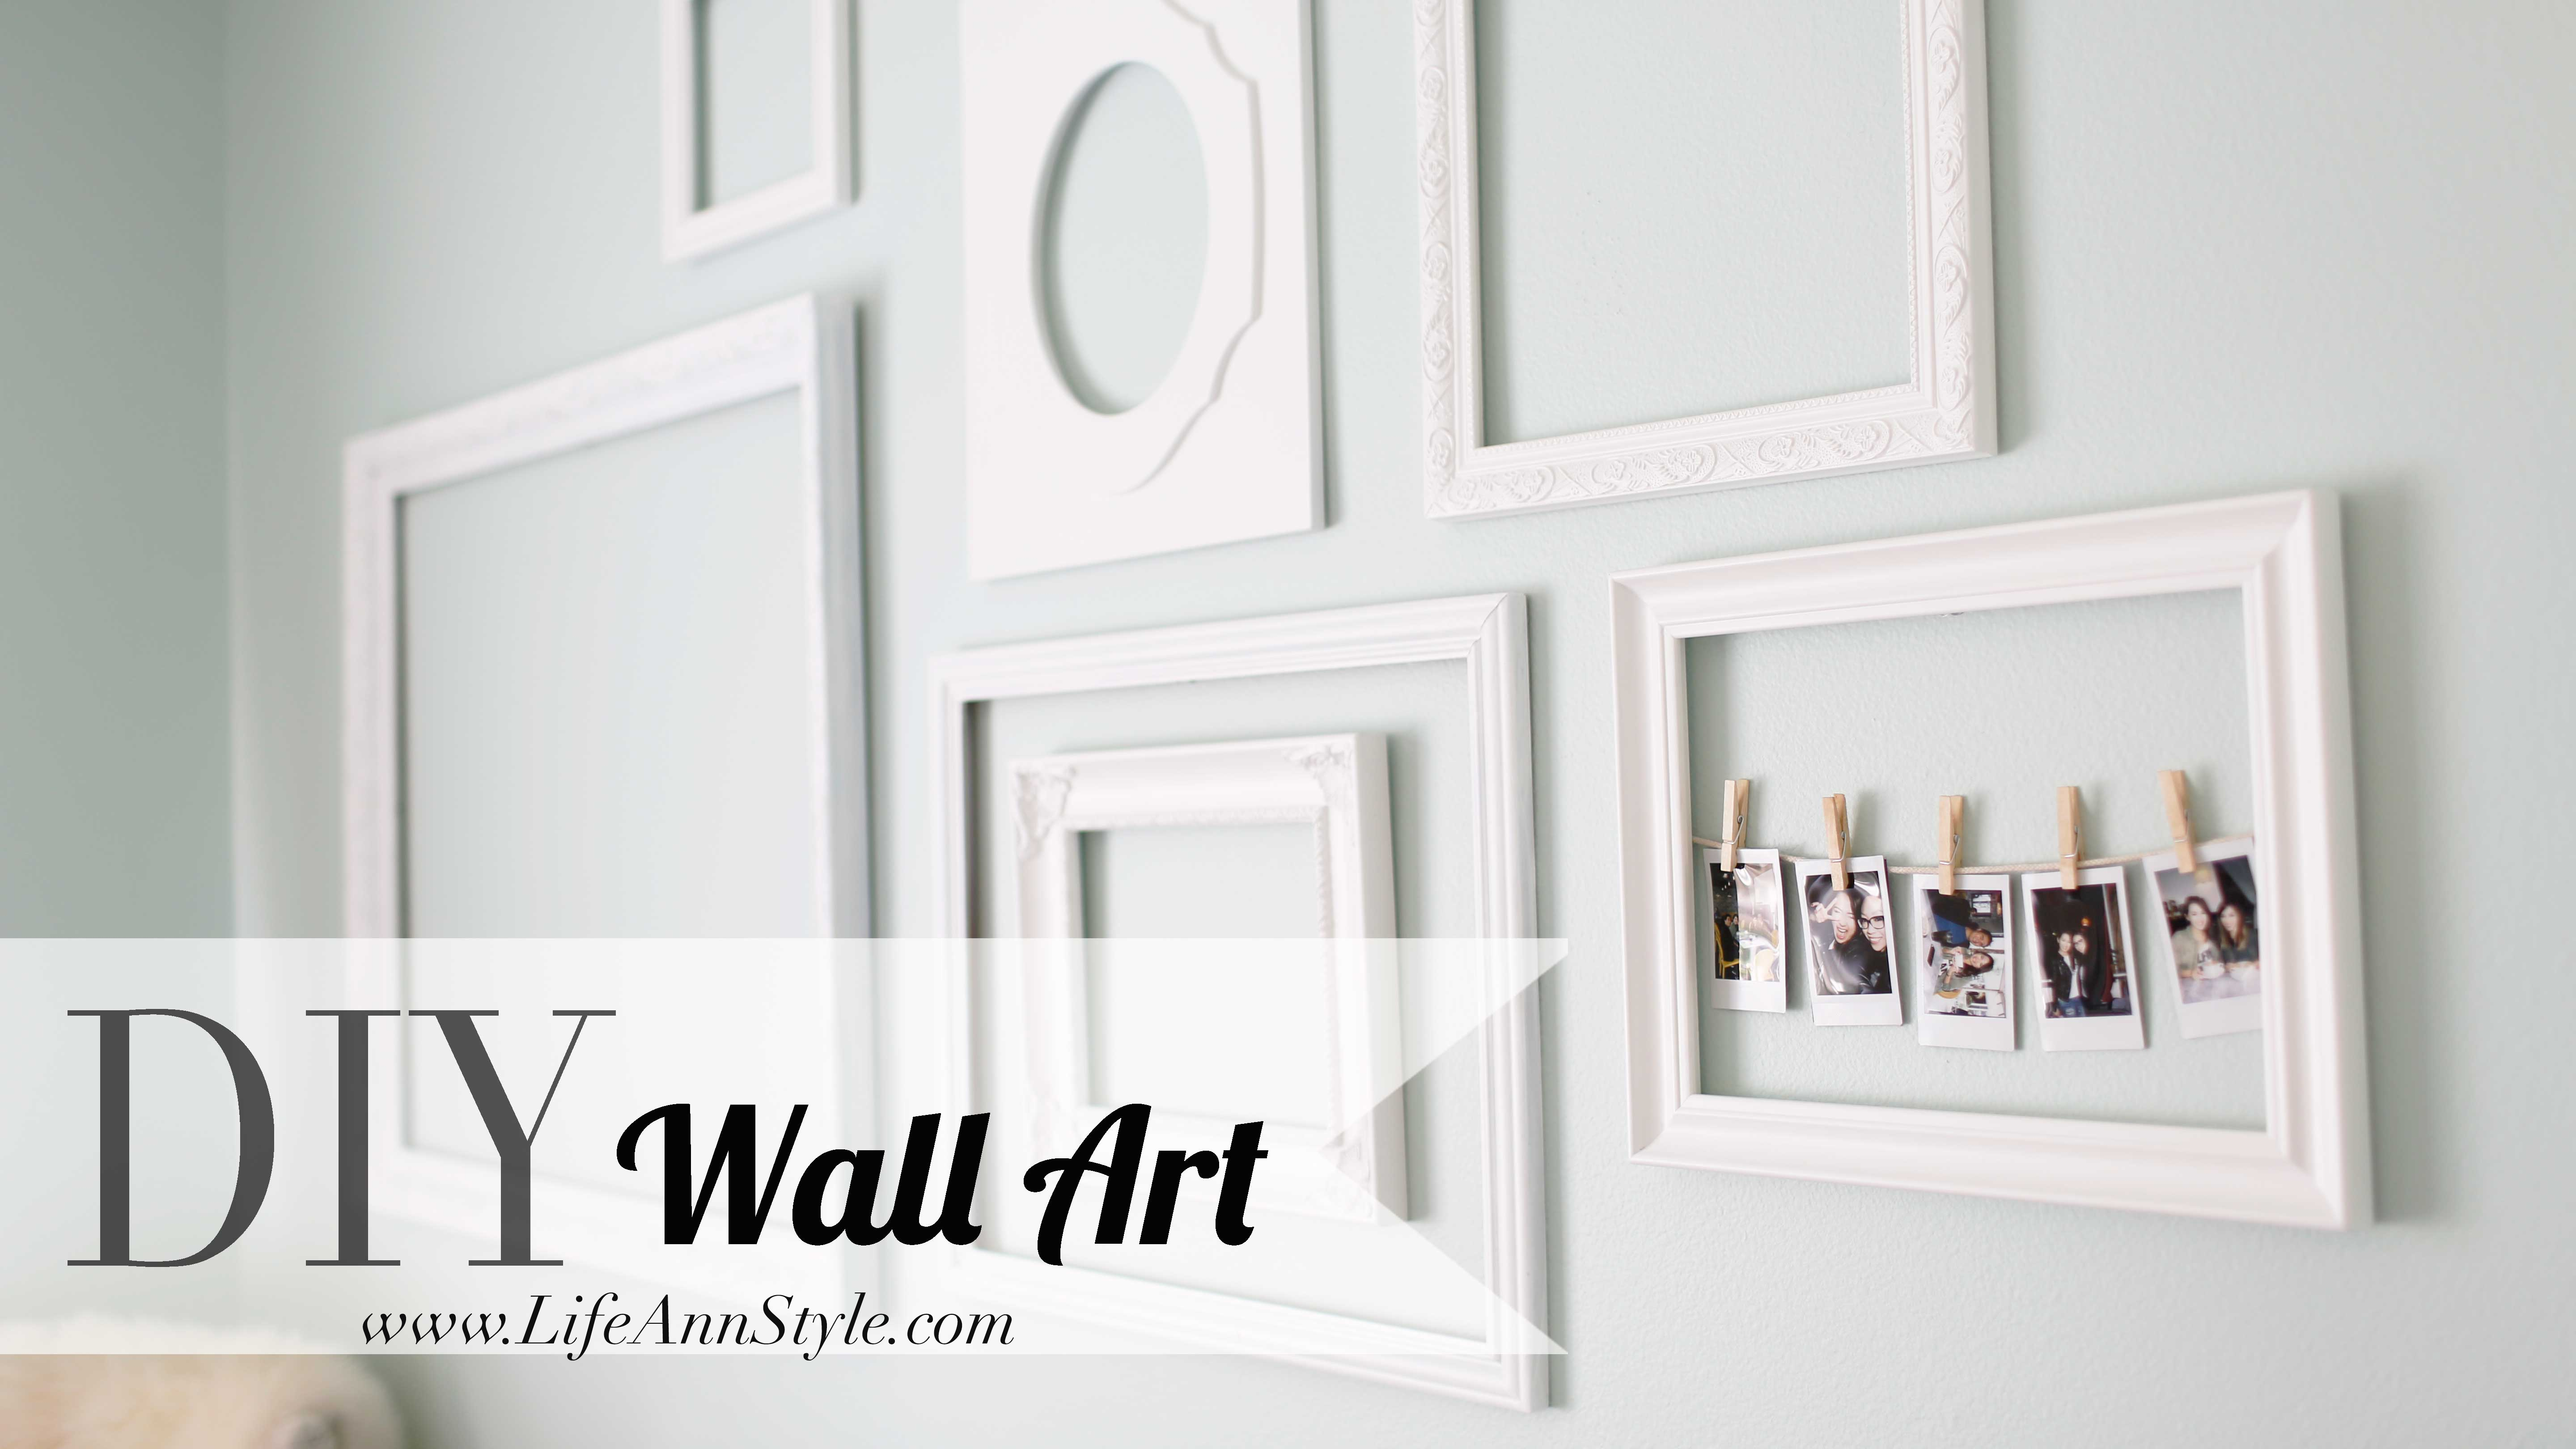 Wall Art Designs: Astounding Magnetic Prints White Framed Wall Art Inside Current Black And White Framed Wall Art (View 9 of 20)